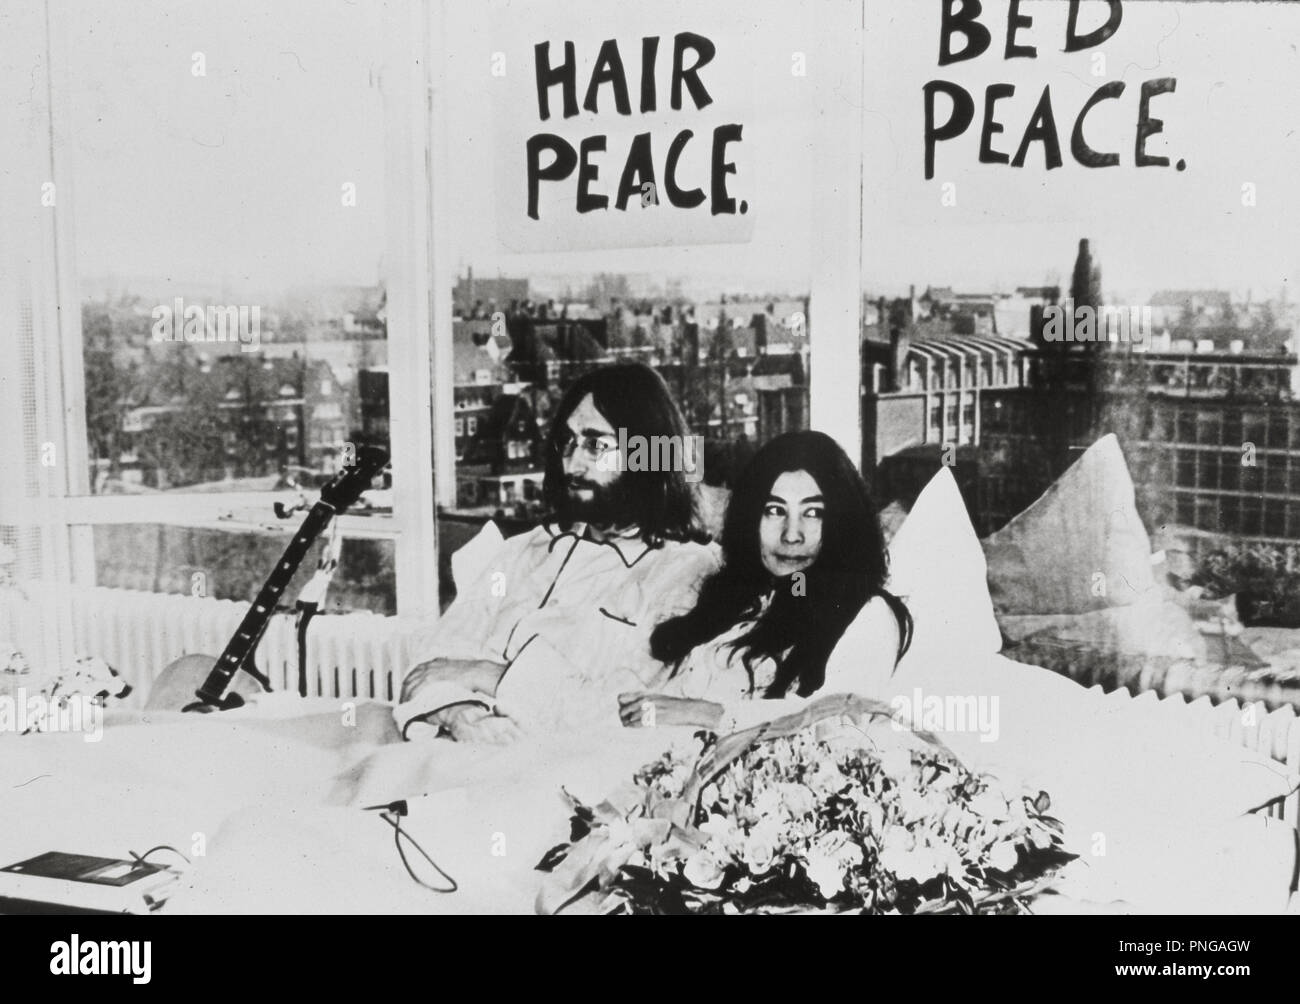 John Lennon Yoko Ono Credit Express Newspapers Album Stock Photo Alamy